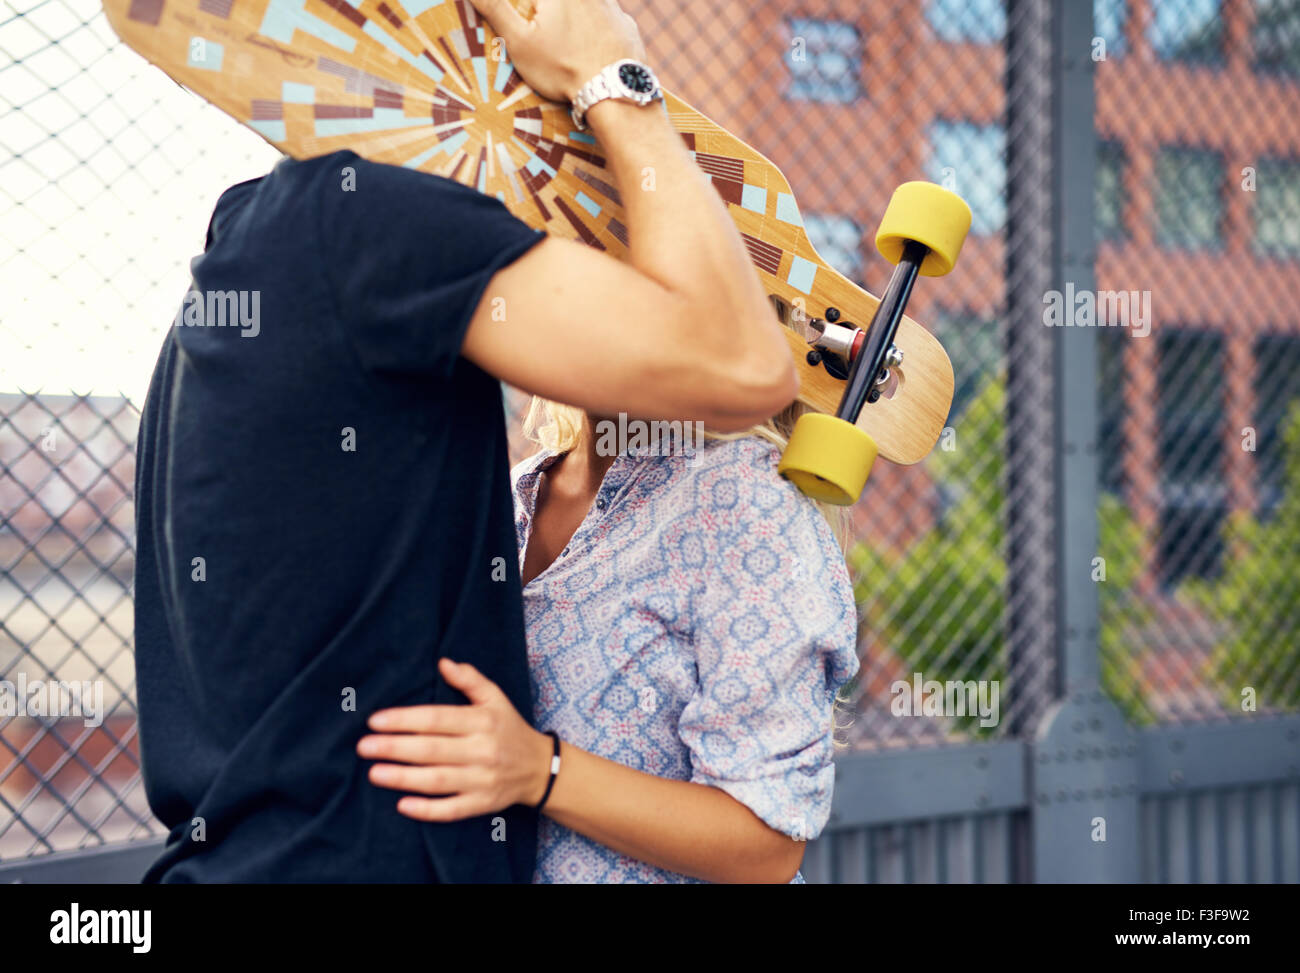 caressing couple hiding behind skateboard and kissing - Stock Image